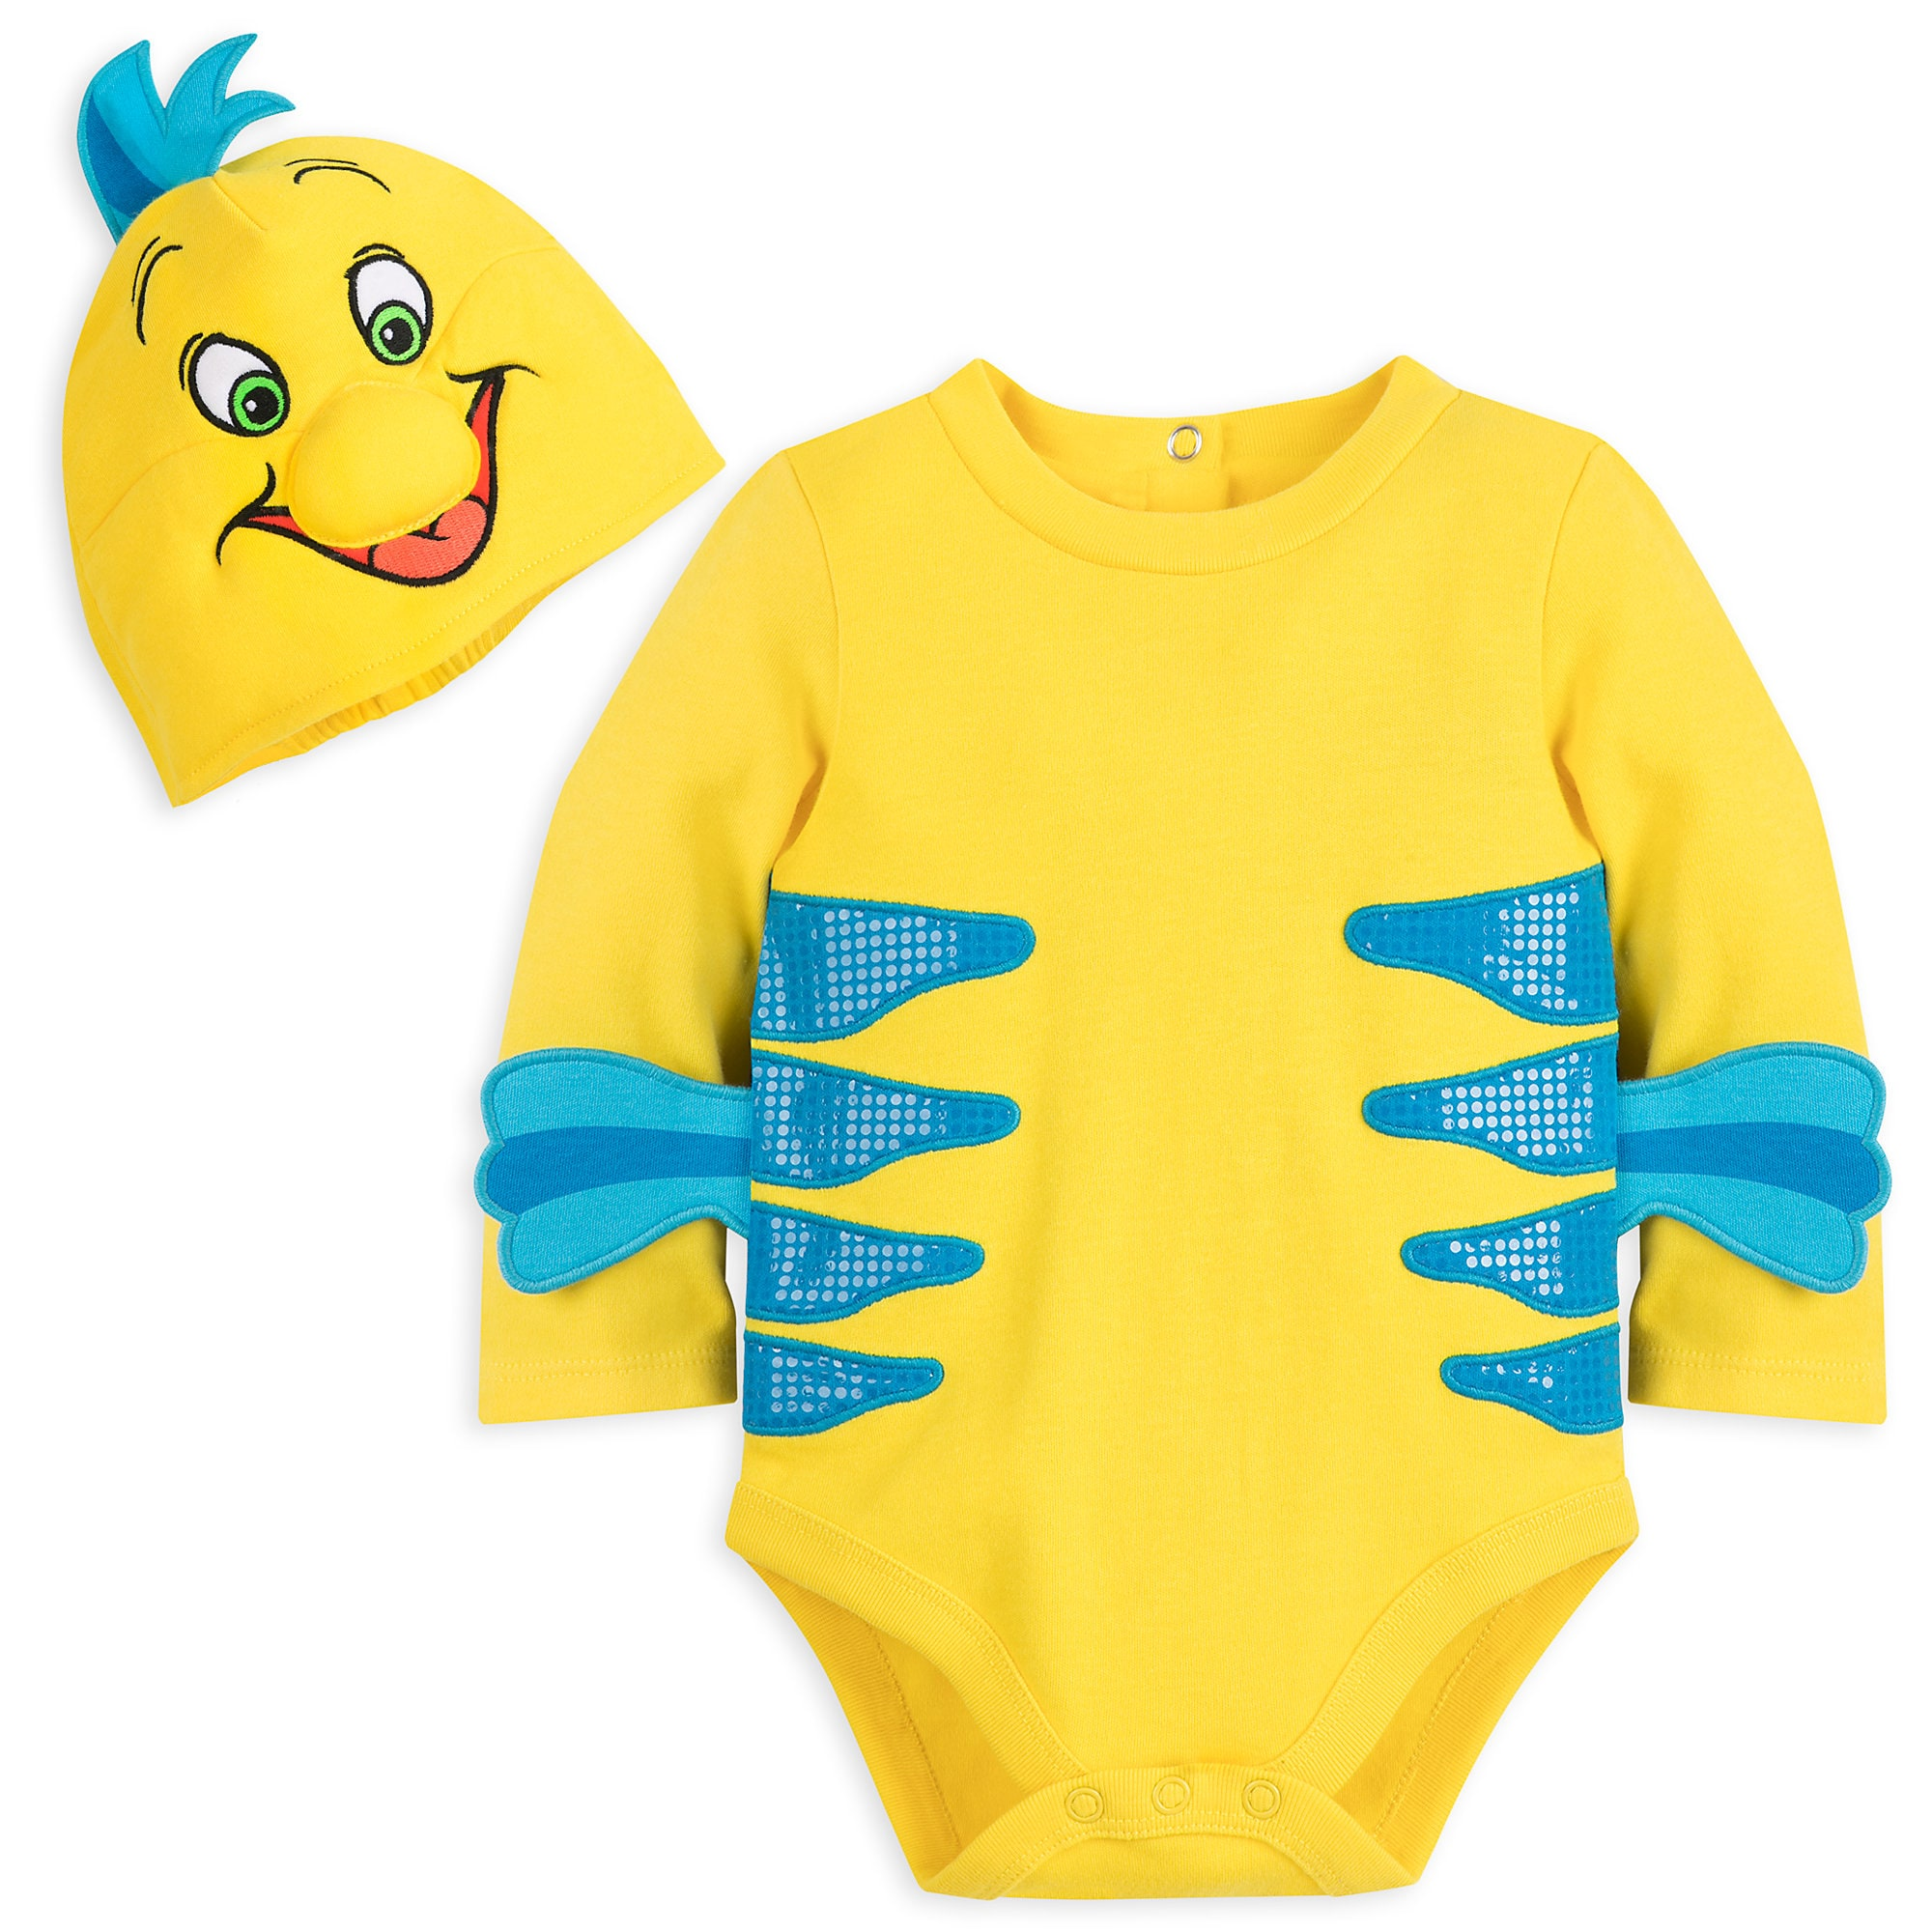 Flounder Costume Bodysuit for Baby - The Little Mermaid  sc 1 st  shopDisney : flounder costume toddler  - Germanpascual.Com